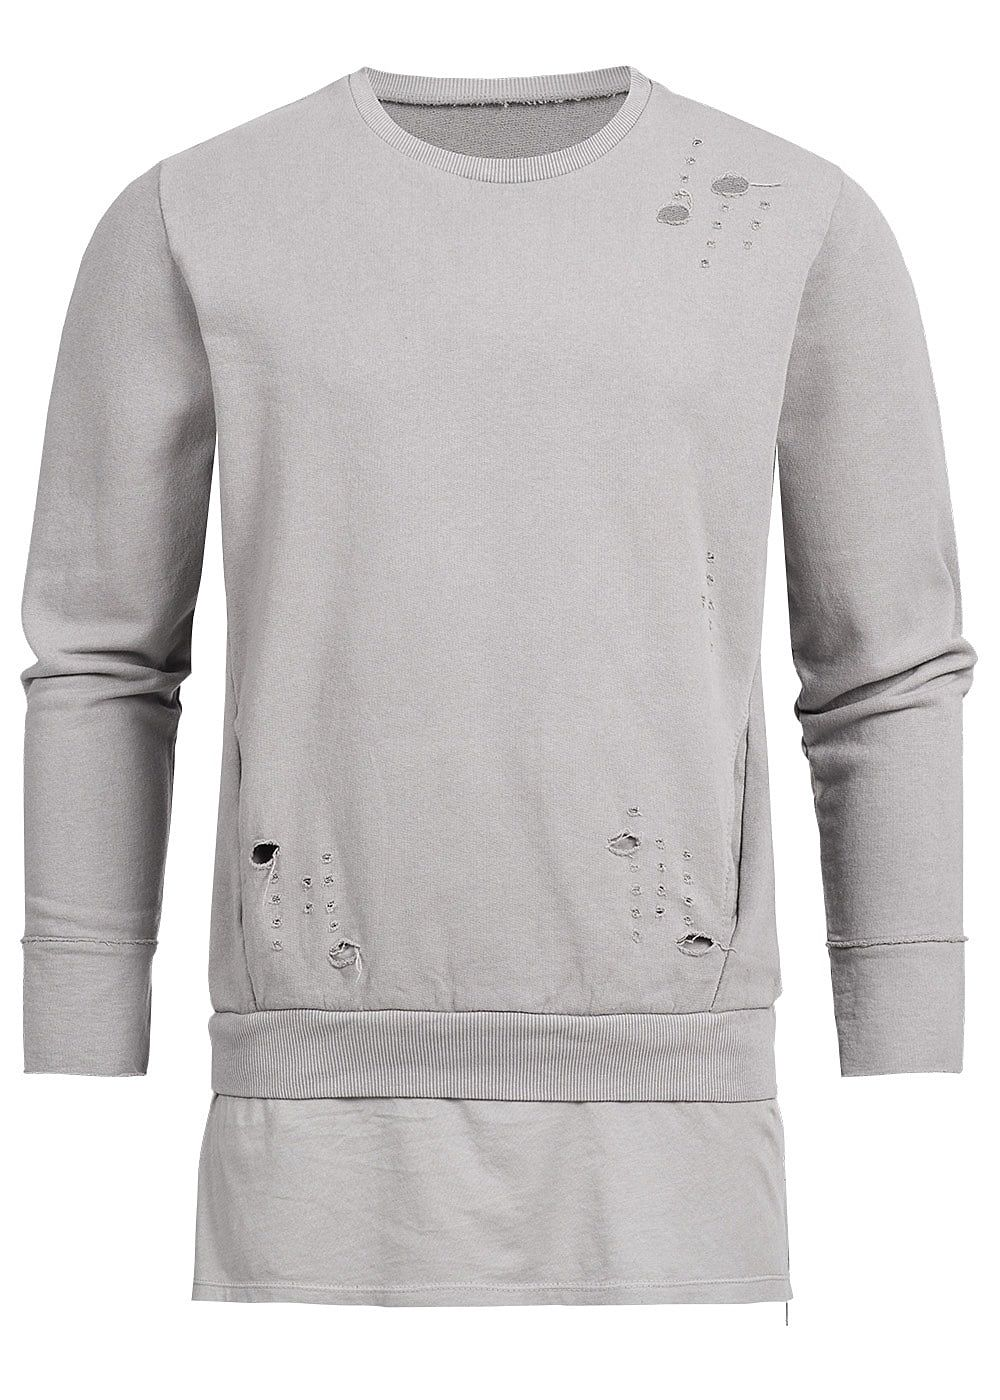 Seventyseven Lifestyle Men Open Edge Side Zip Long Crewneck Sweater beige grey - Art.-Nr.: 18020662